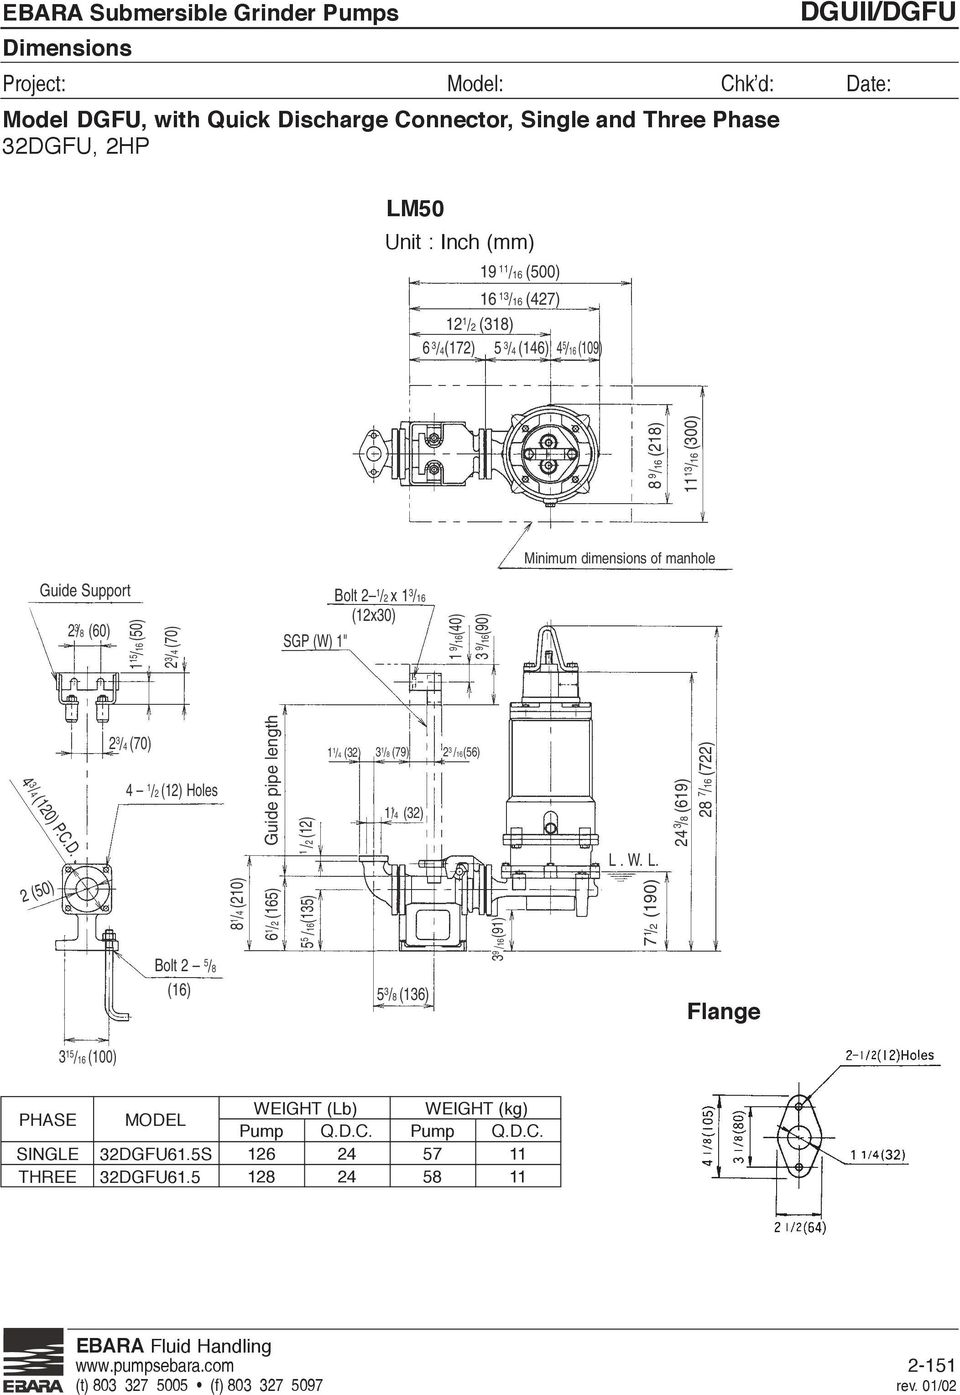 Project Model Chk D Date 32dguii615s Pdf Air Conditioning C60 Overhead System Wiring Diagram G Models For 2 50 3 70 Holes